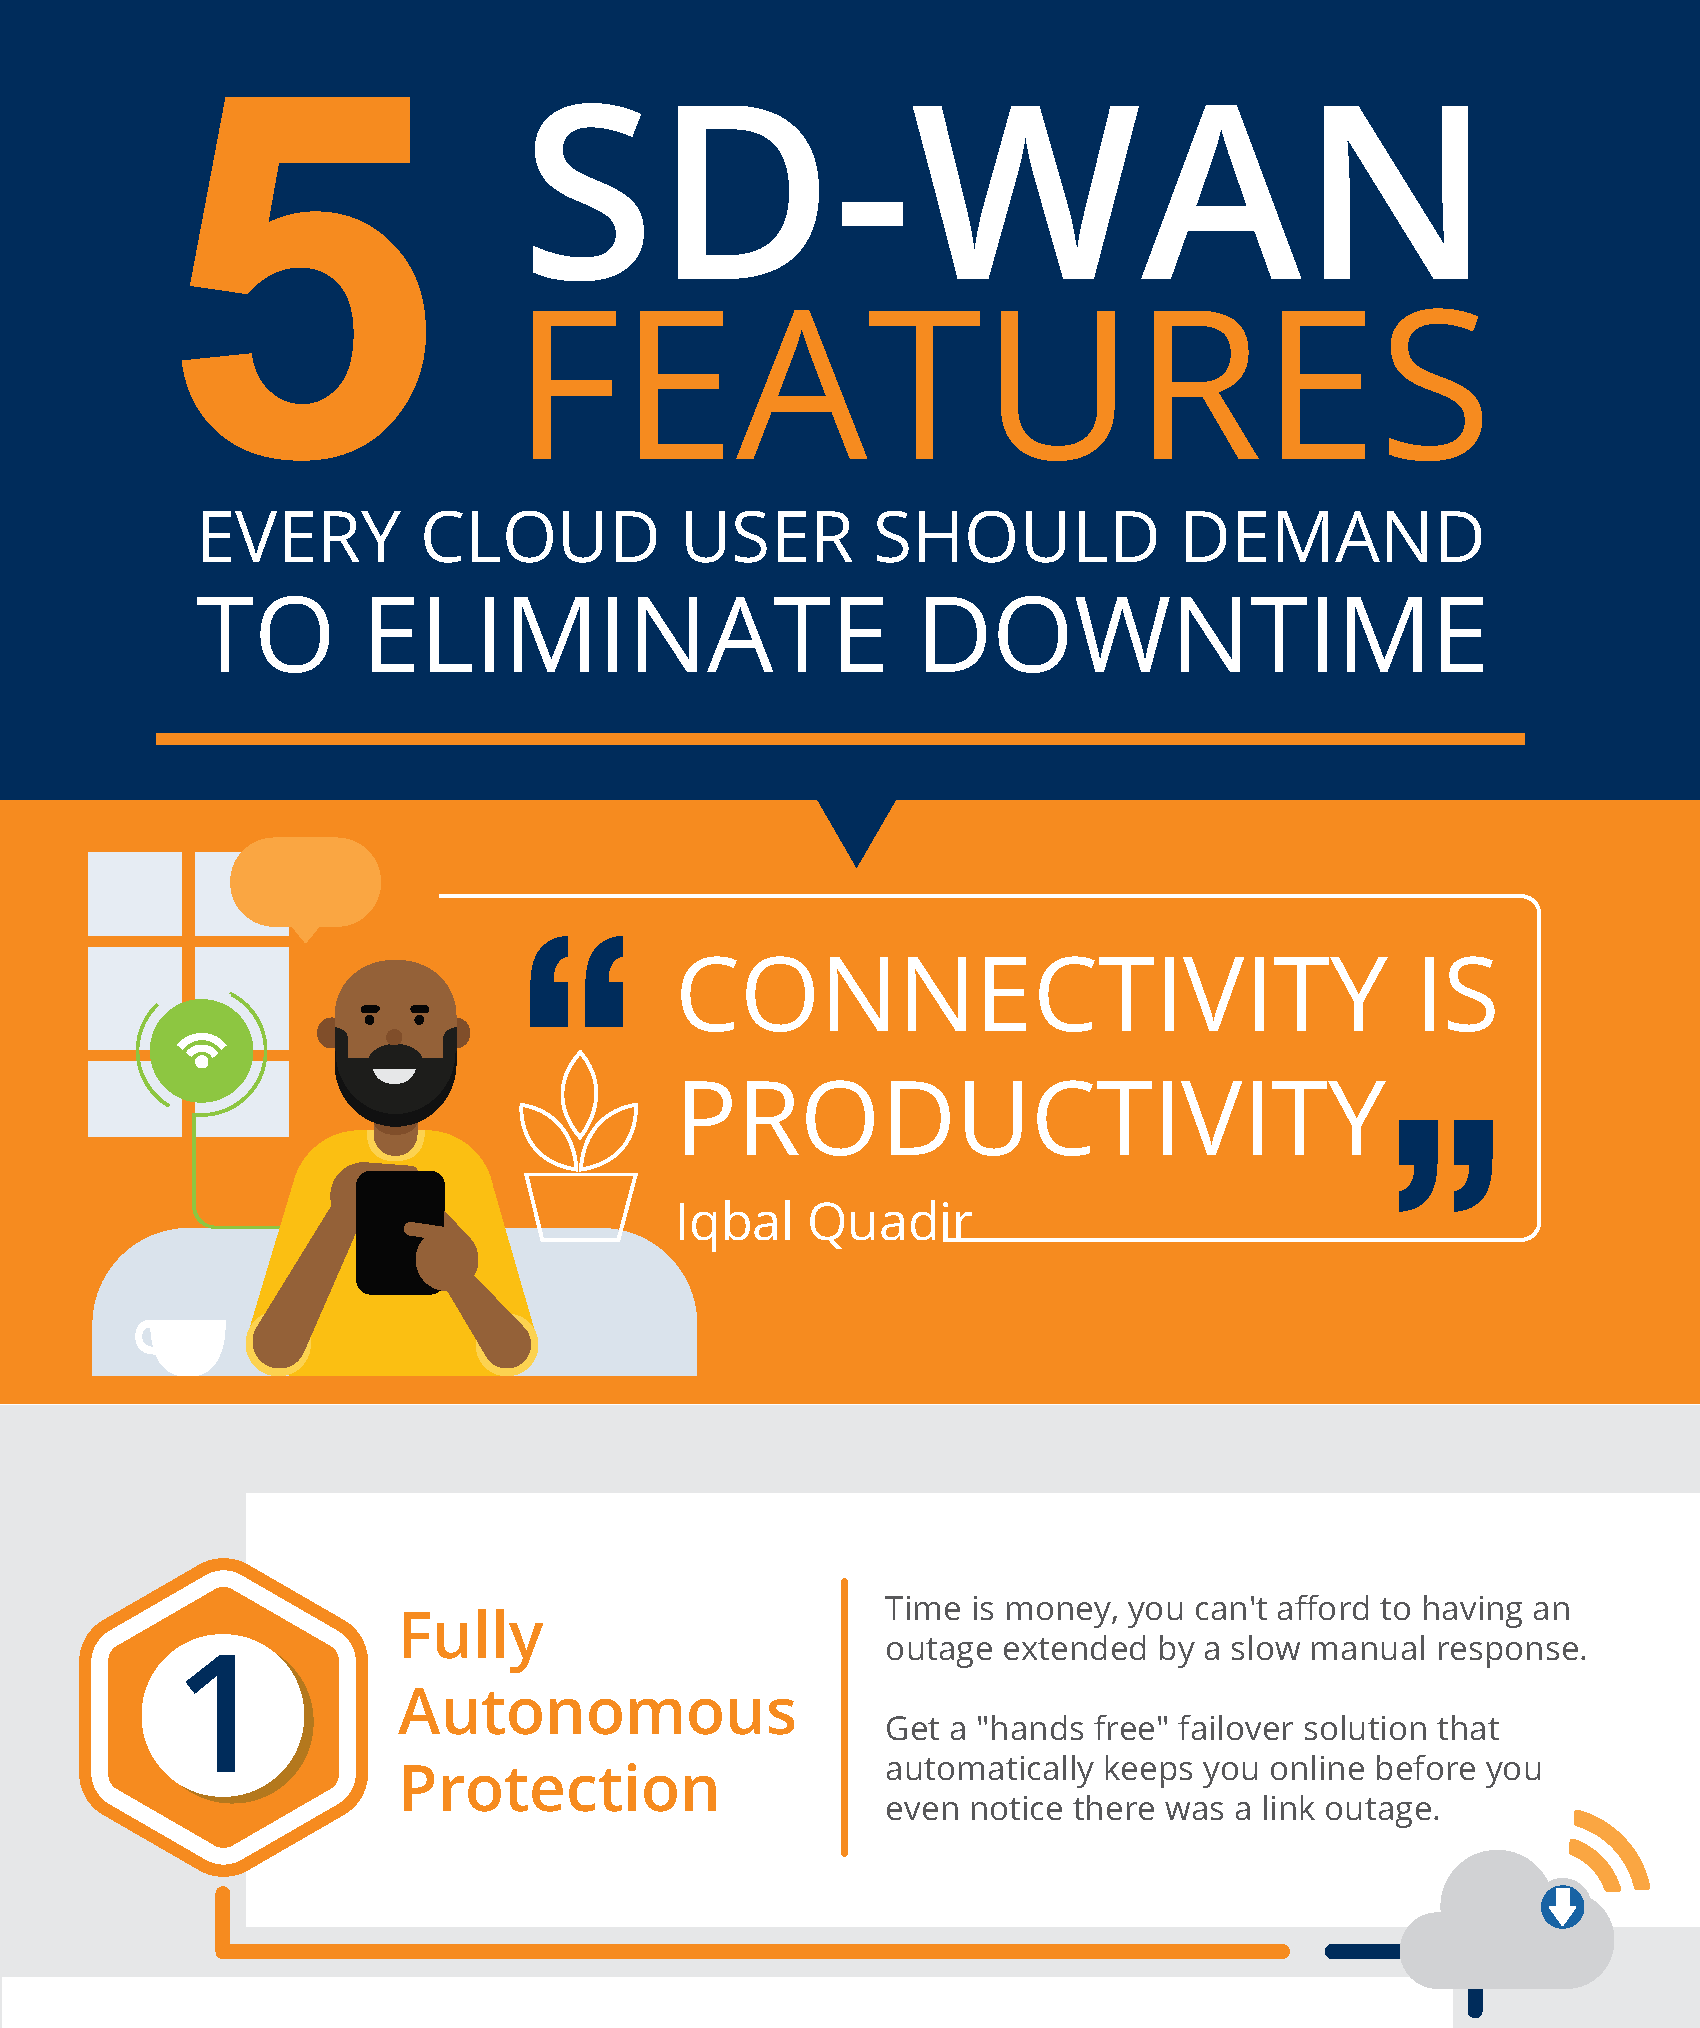 https://www.nolinetel.com/wp-content/uploads/2020/02/Infographic-SD-WAN-Failover_Infographic-Image.png